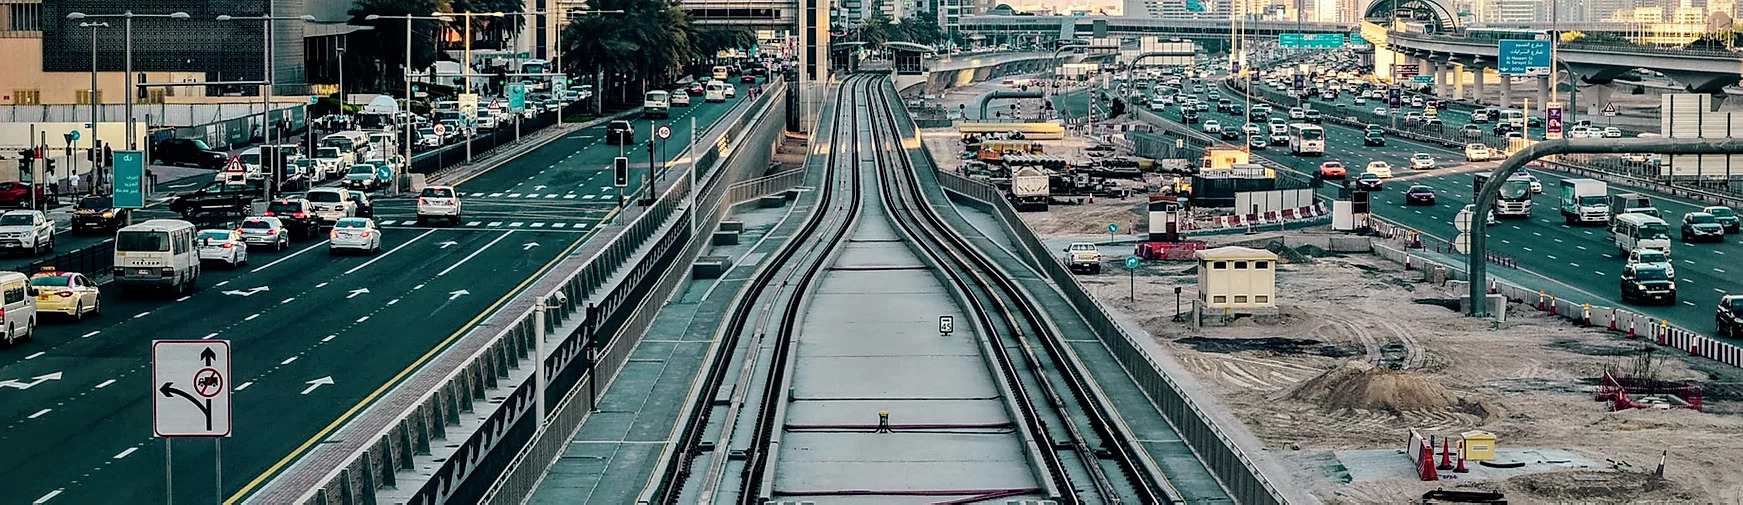 Urban Railway Tracks